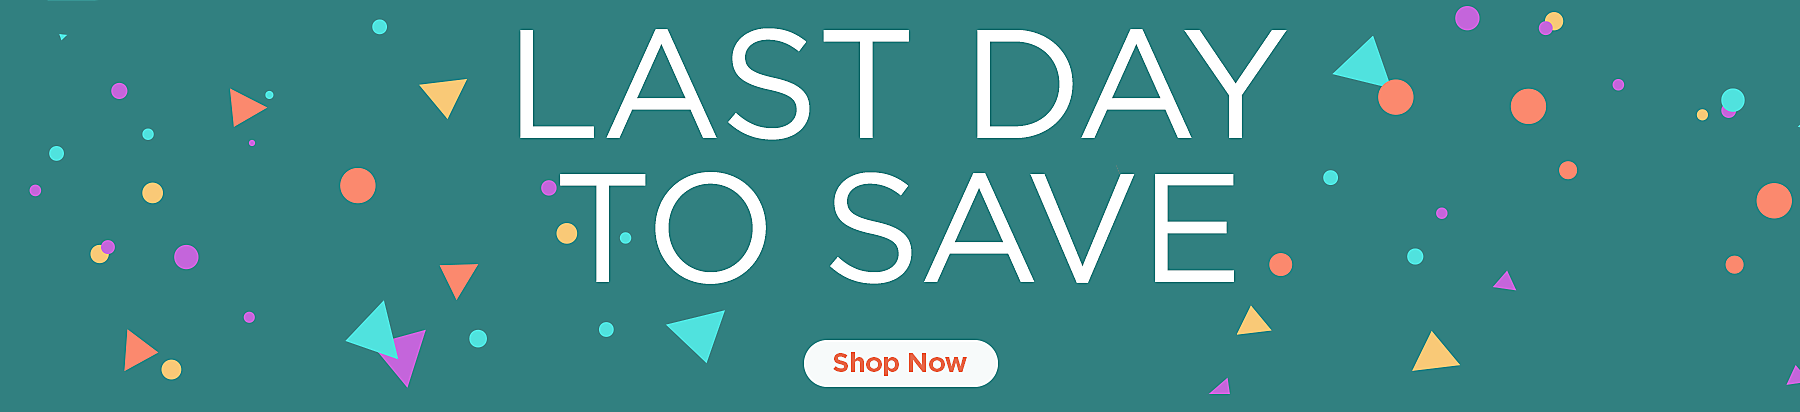 Last day to save - Shop Now